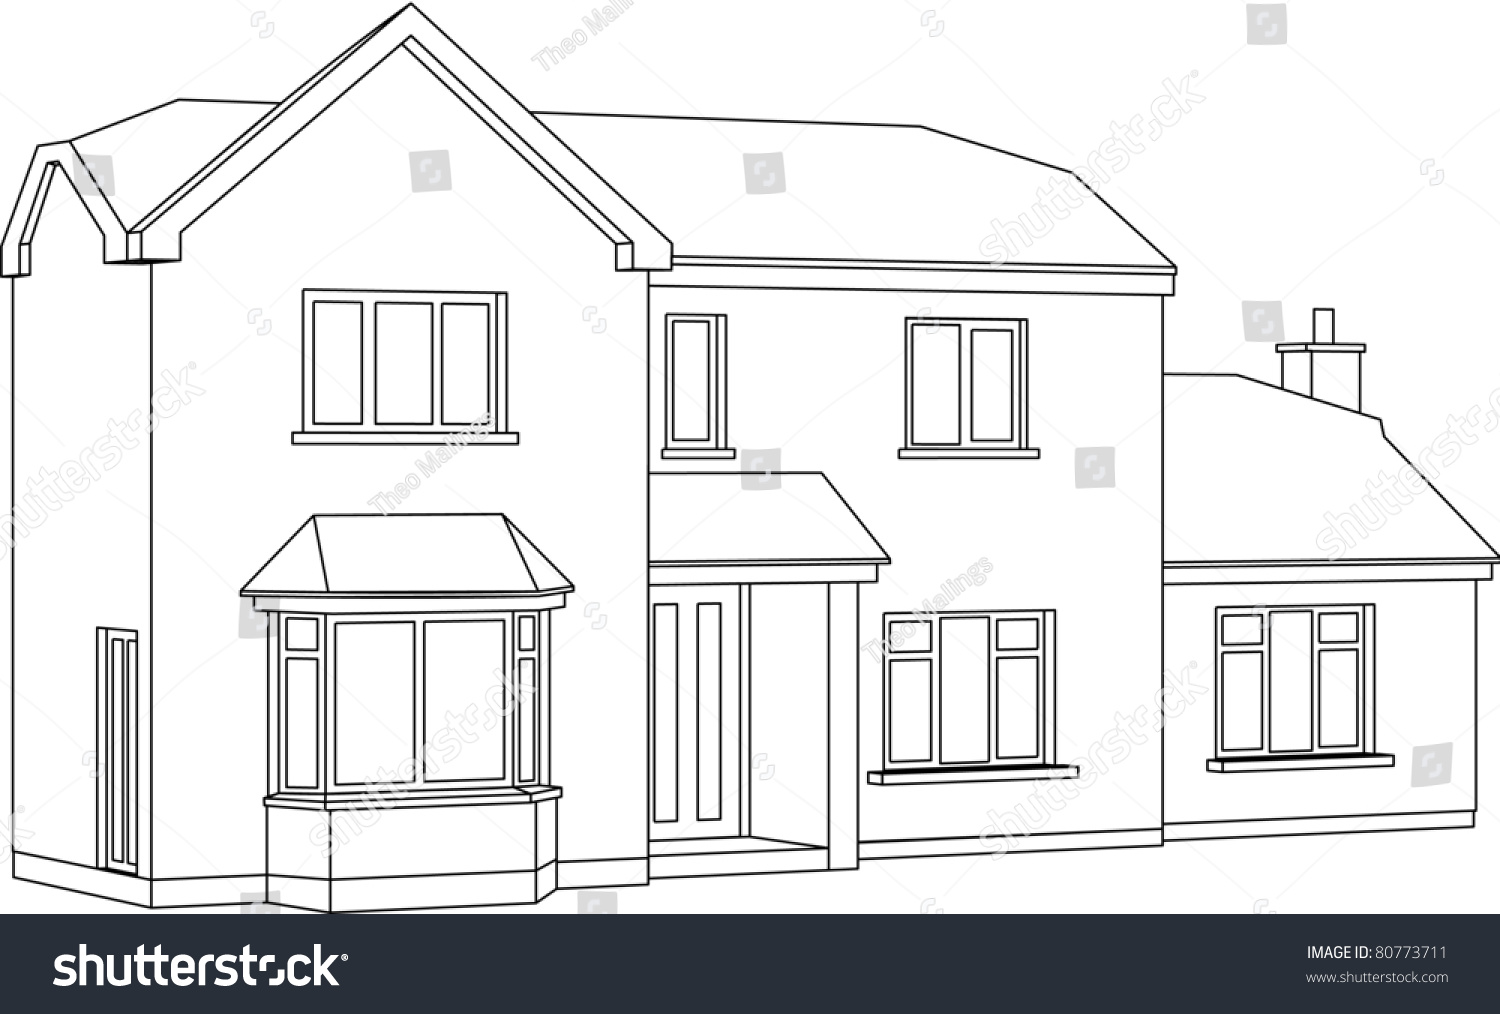 A 3d Two Point Perspective Line Drawing Of A Two Storey